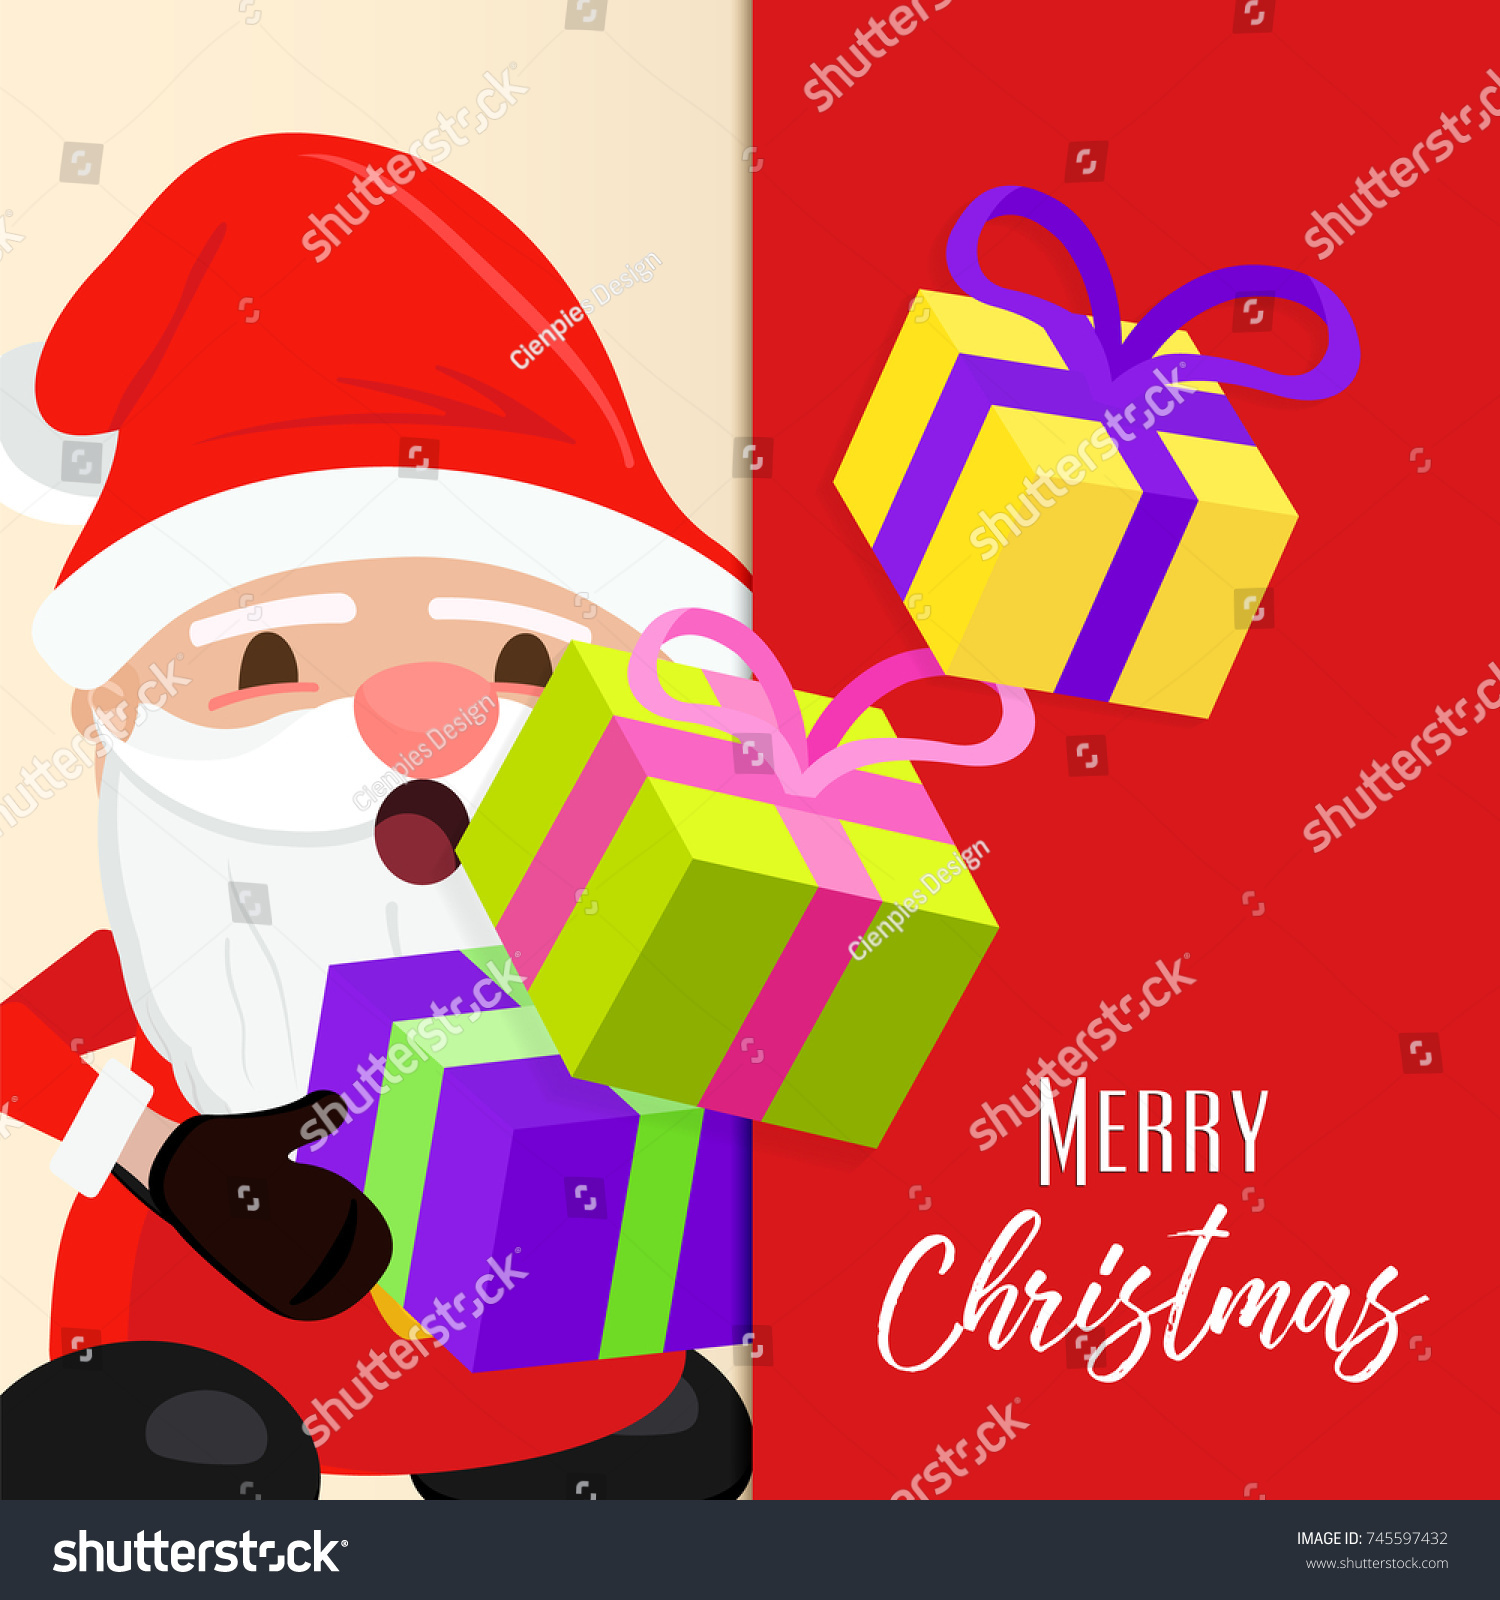 Merry Christmas Greeting Card Illustration Holiday Stock Vector